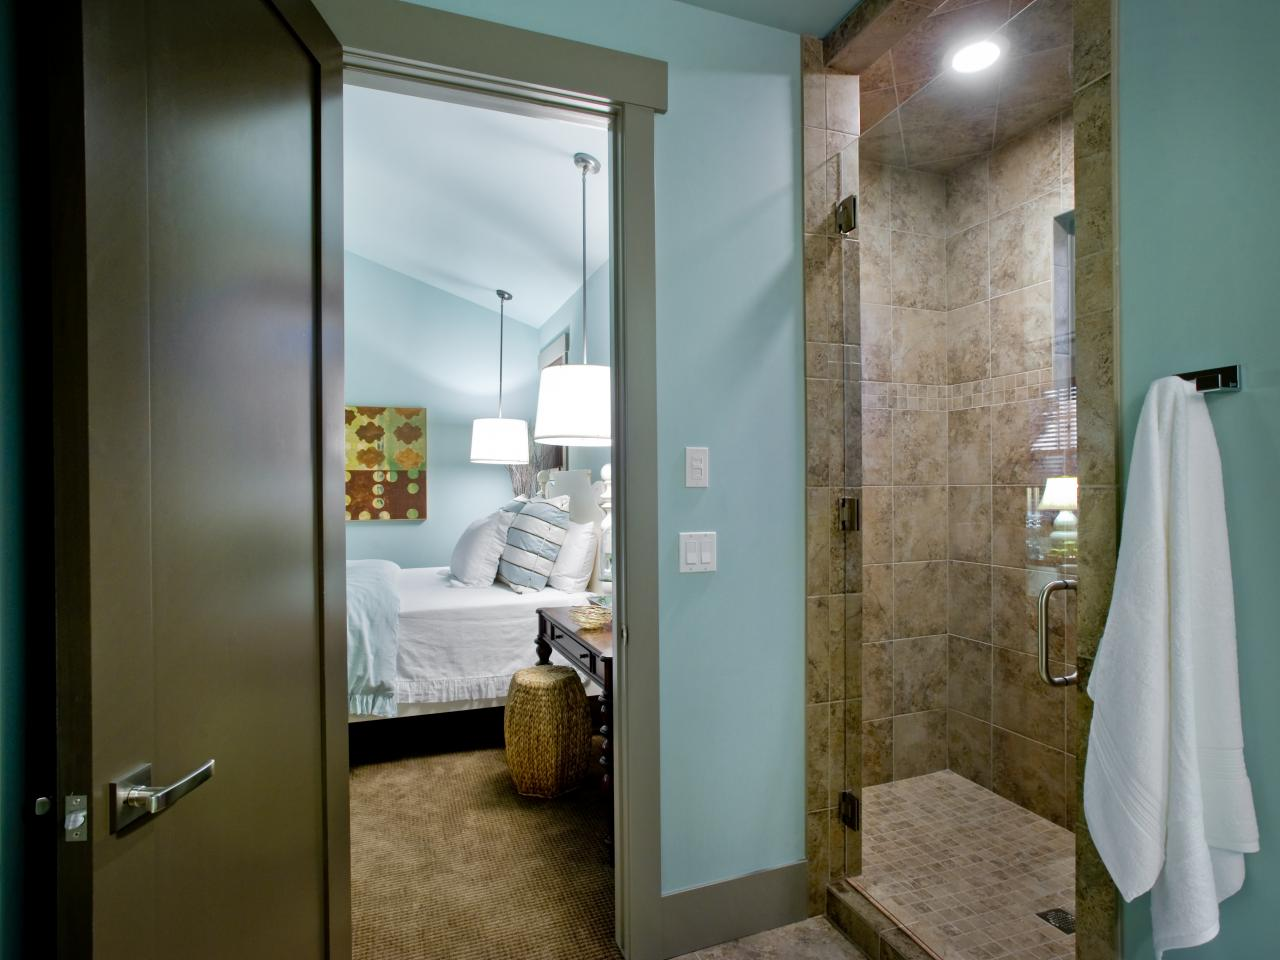 04-DH2012_Guest-Bedroom-1-Bath-Shower_s4x3.jpg.rend.hgtvcom.1280.960